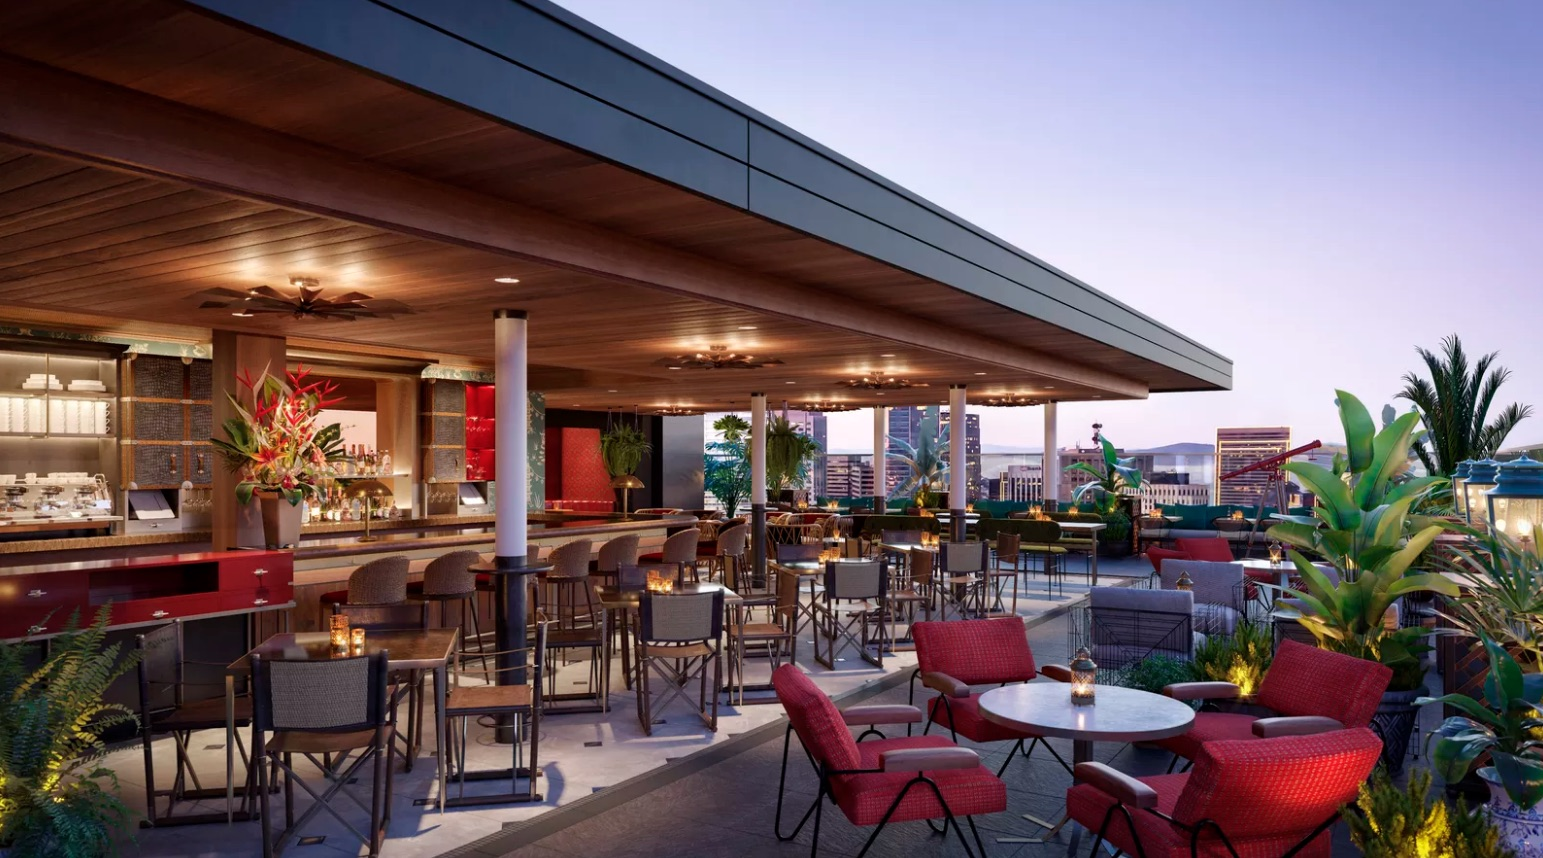 A rendering of the rooftop bar at Virgin's upcoming San Francisco-based hotel